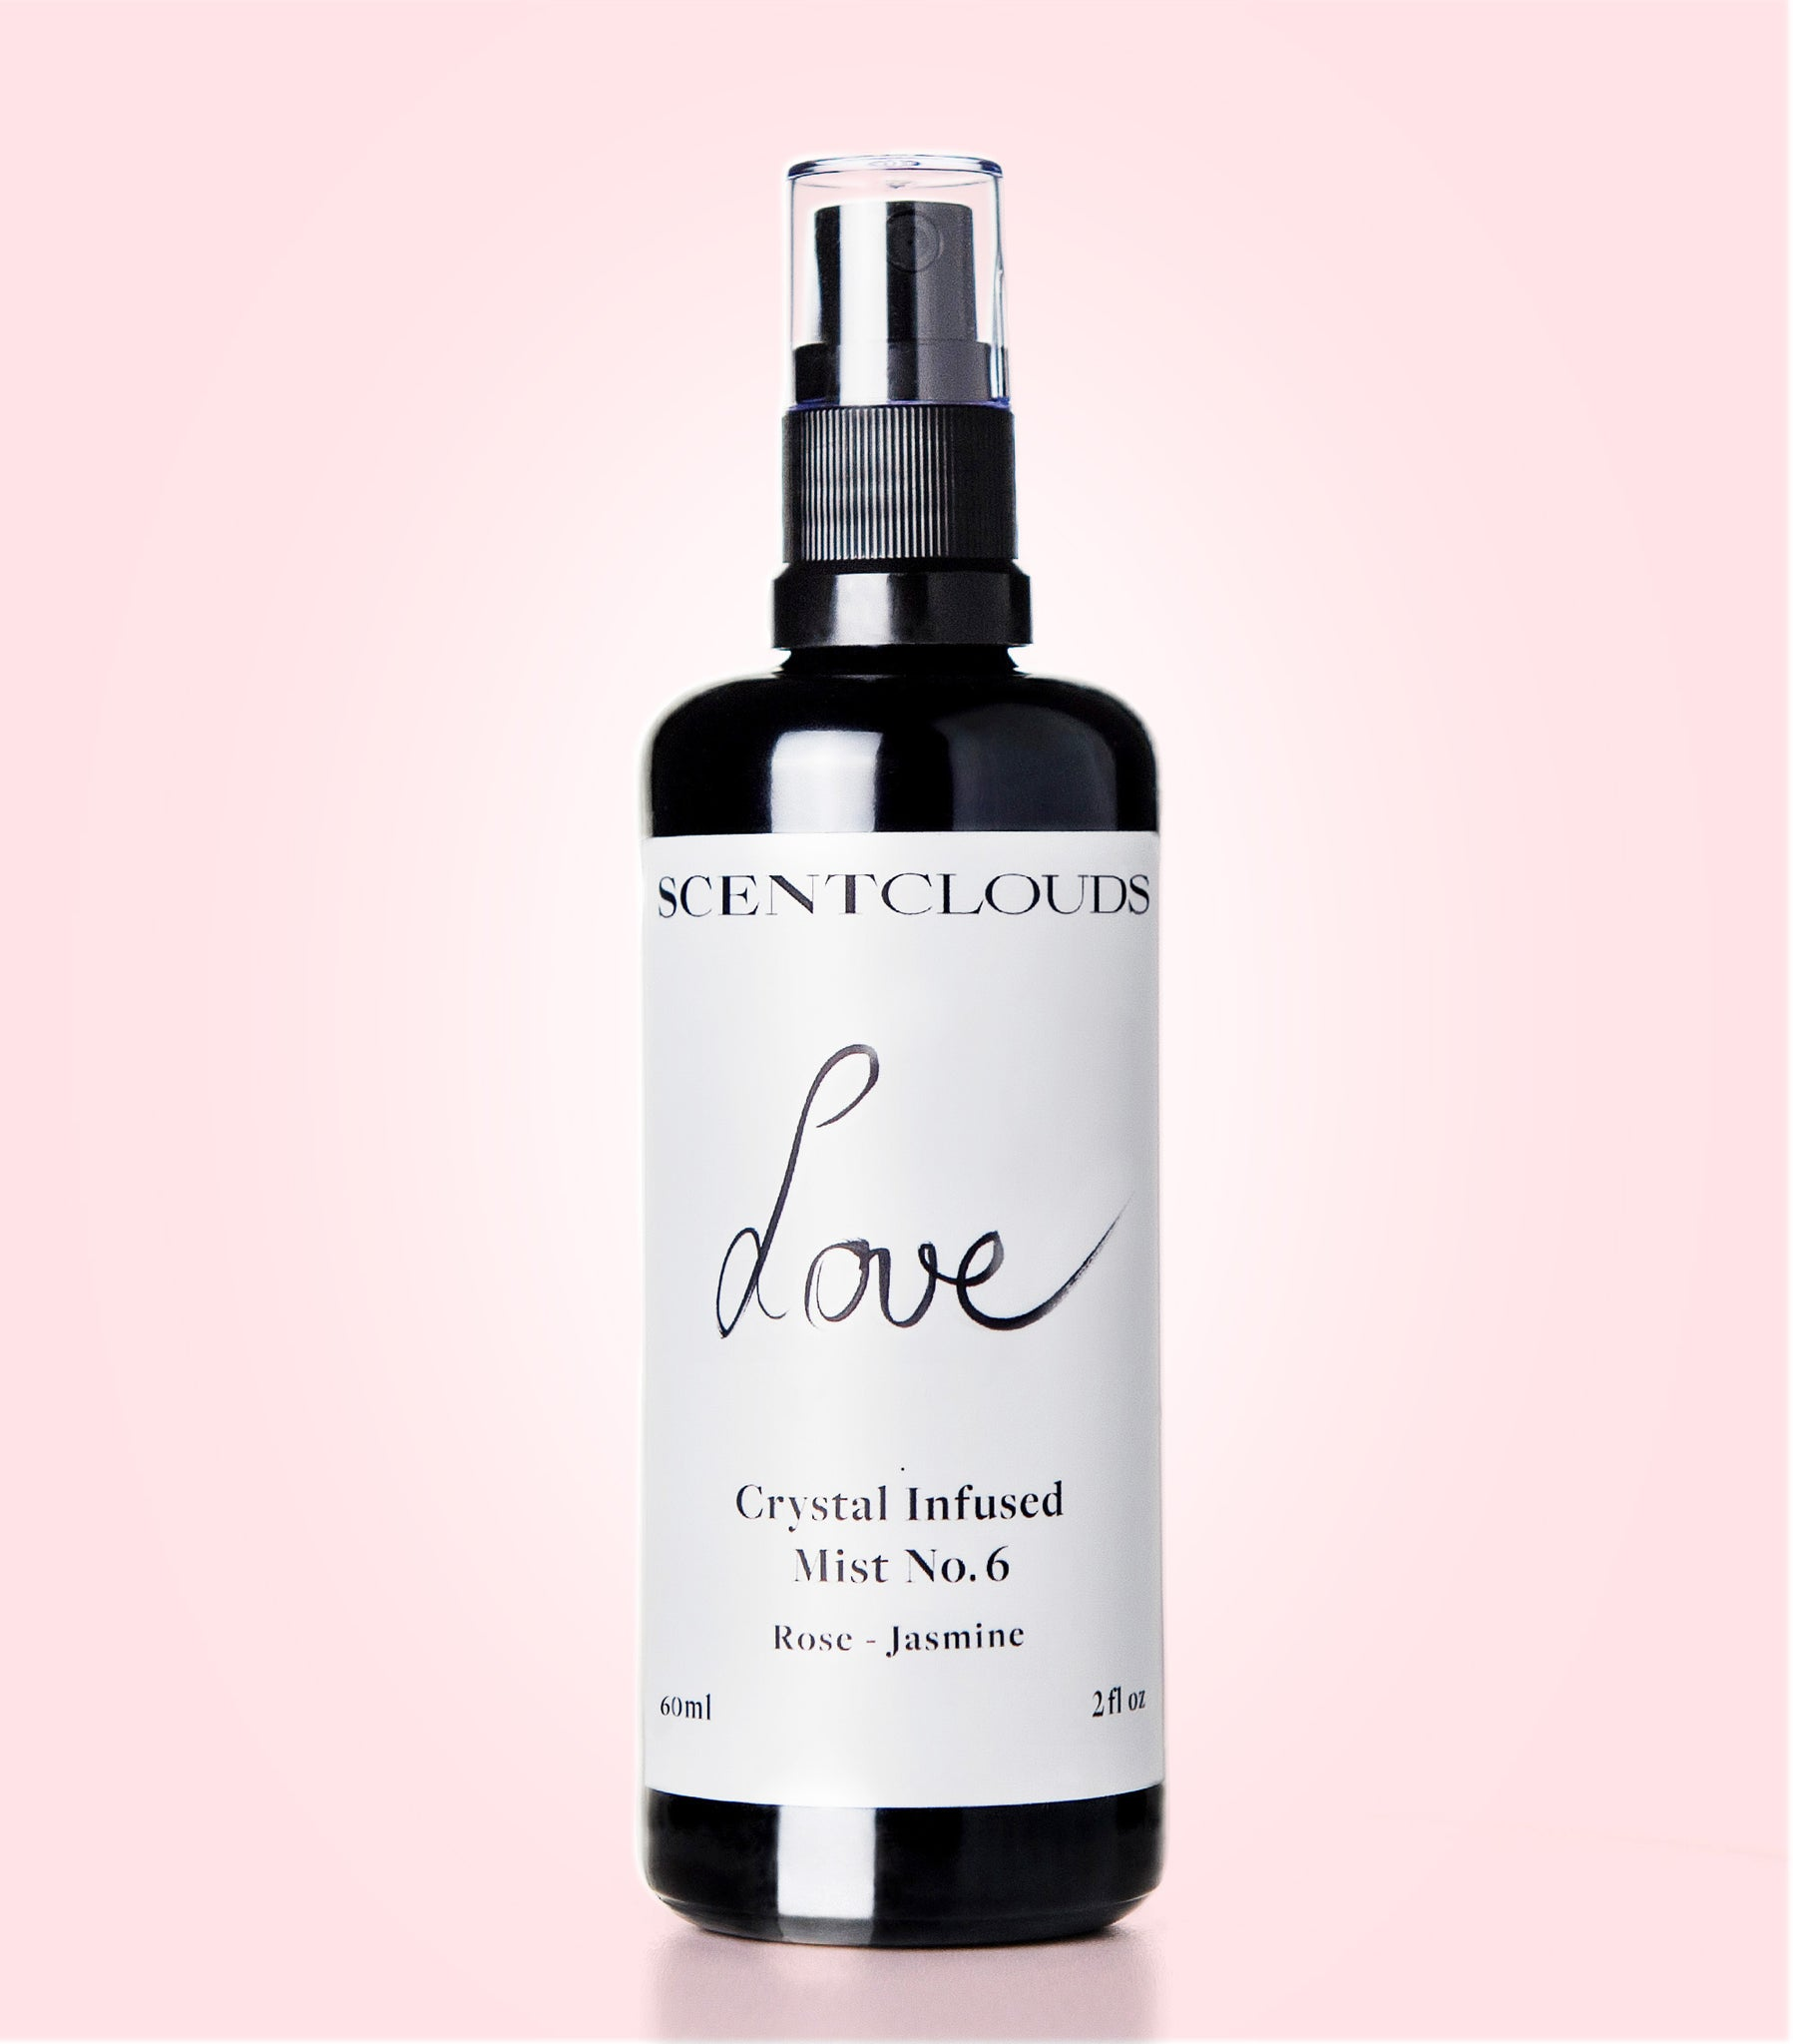 LOVE - BUTTERFLIES IN YOUR TUMMY - APHRODISIAC MIST